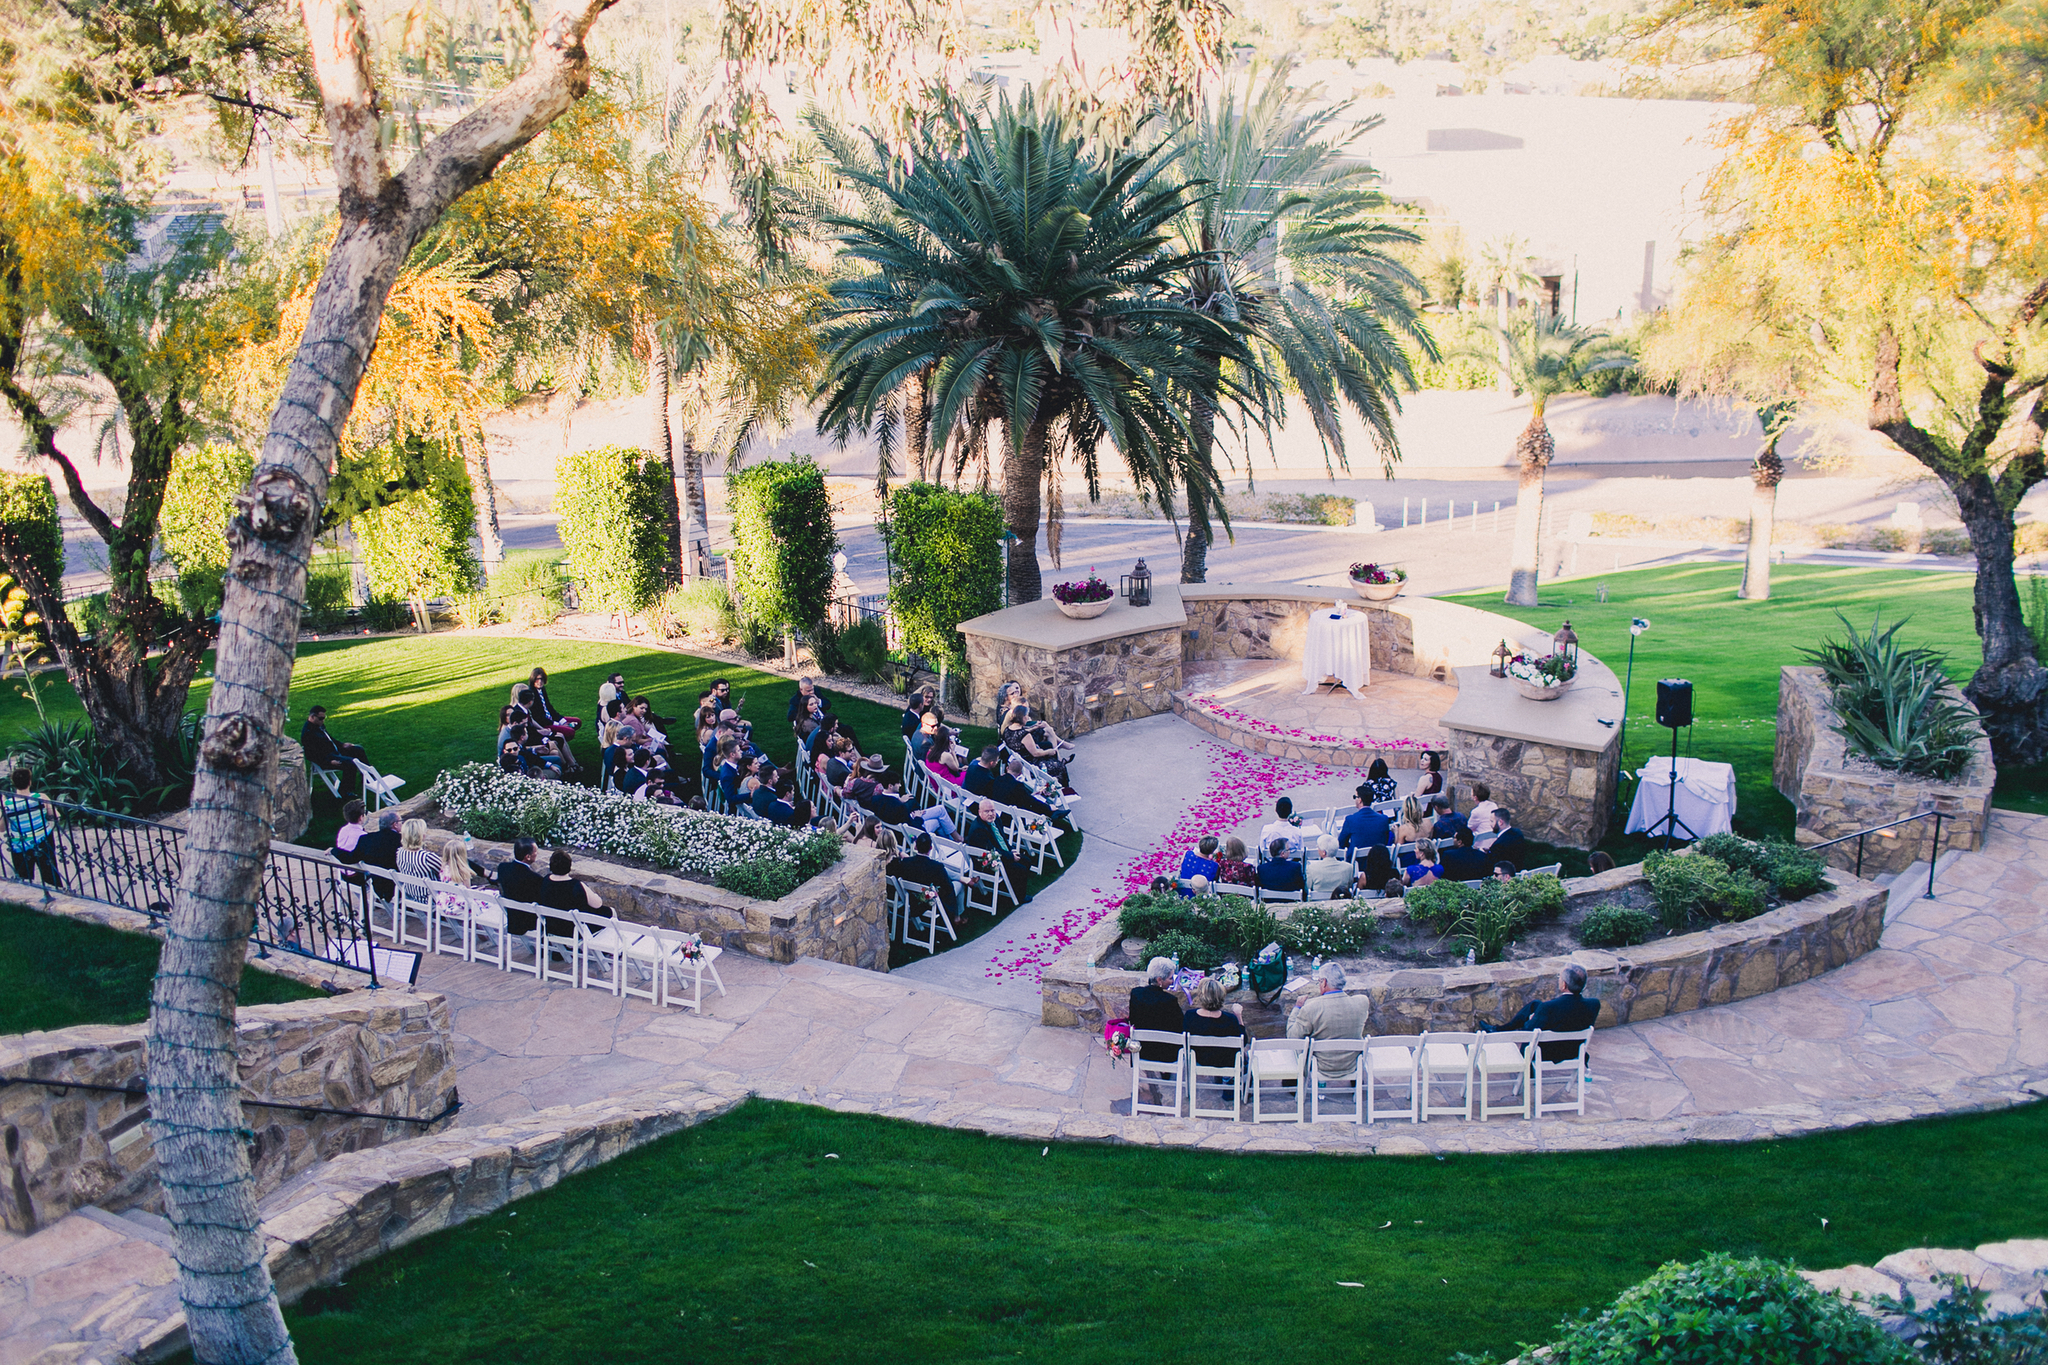 Colorful Springtime Wedding at Wrigley Mansion - Ceremony with Hot Pink Rose Petals on Aisle